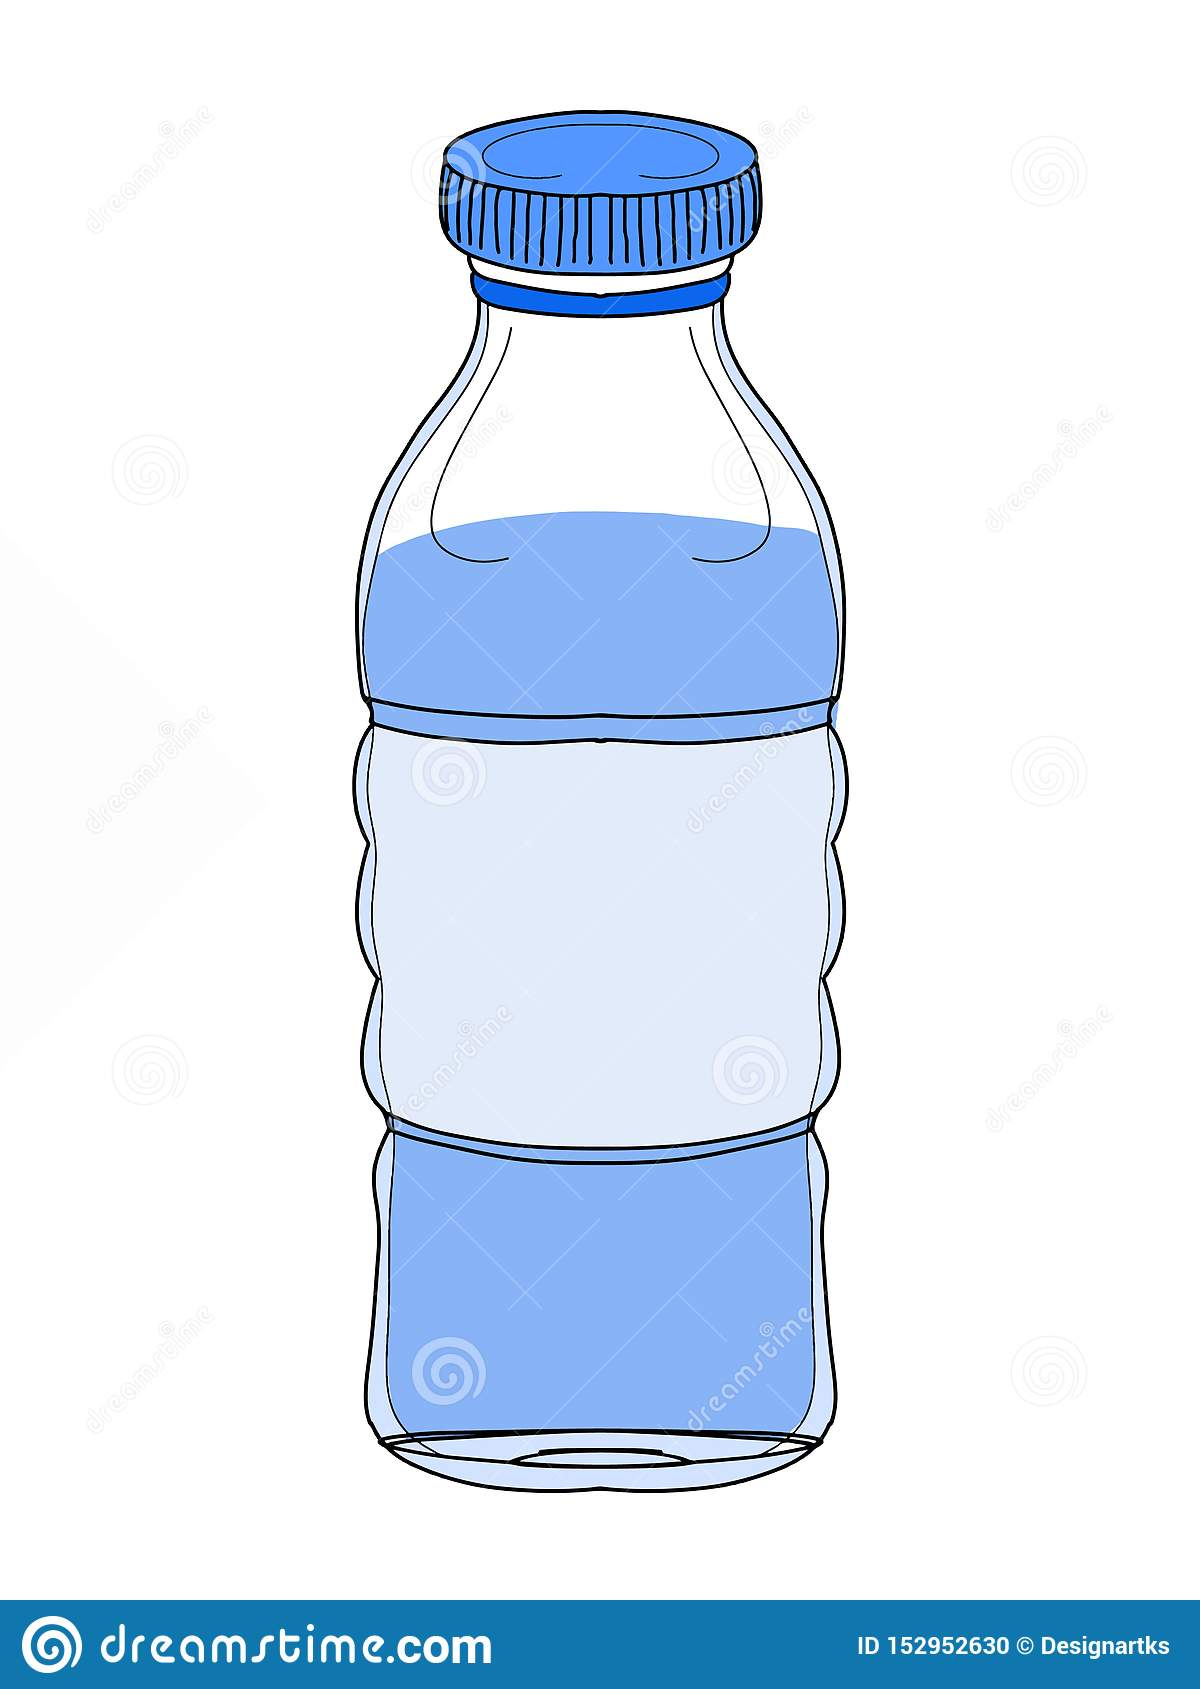 Bottle Water Cartoon Illustration Drawing And Banner Stock Illustration Illustration Of Mineral Life 152952630